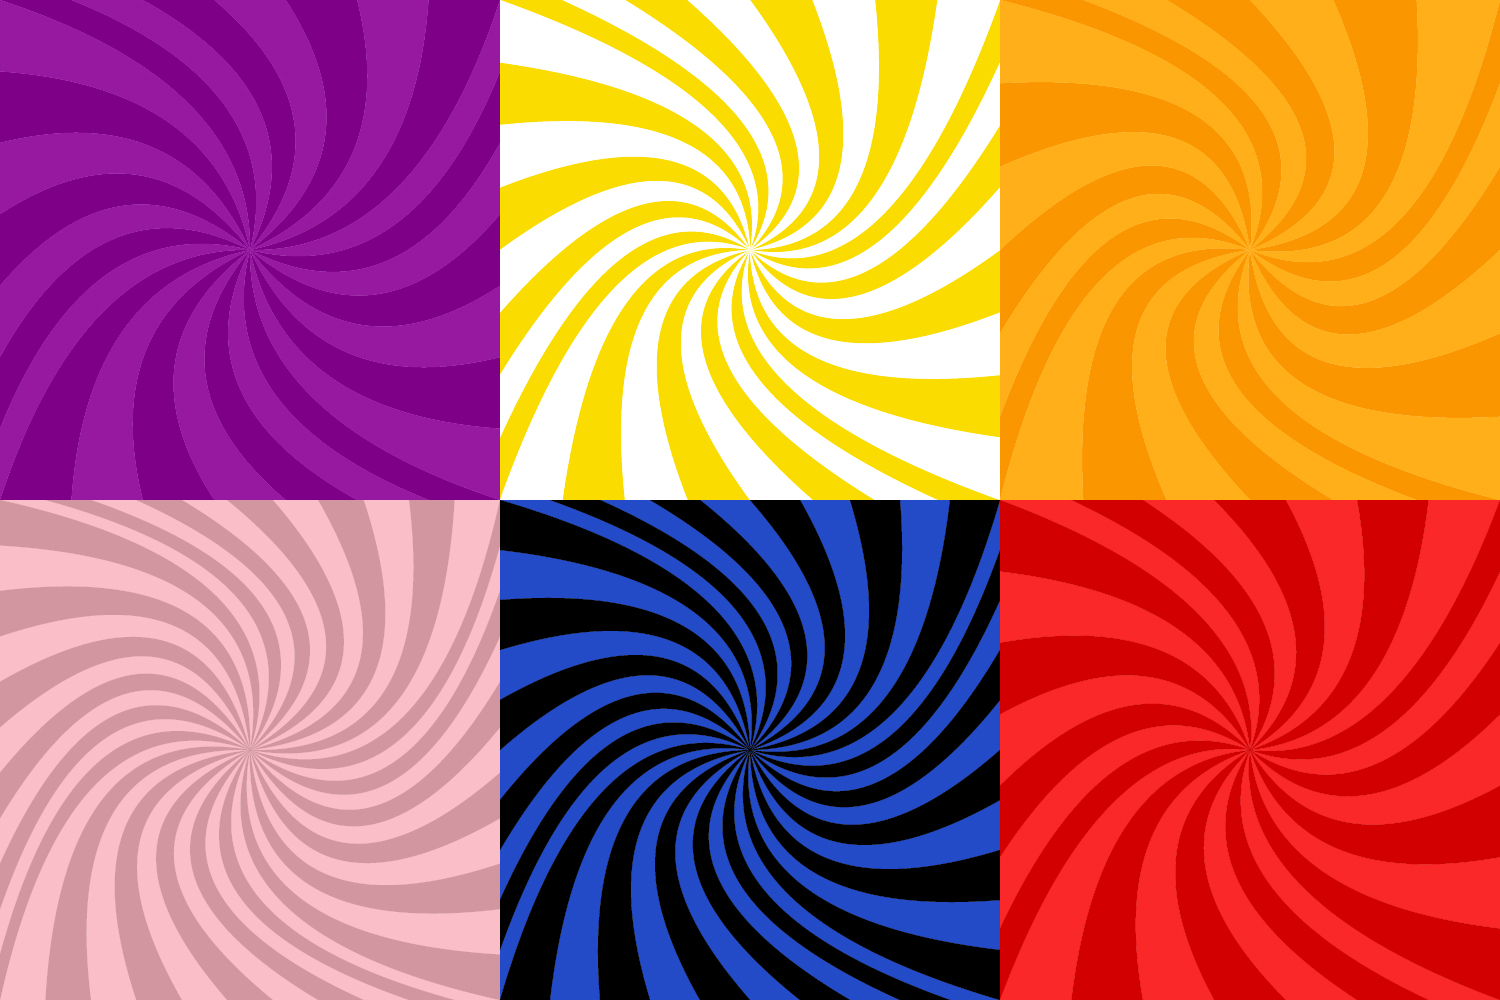 50 Spiral Backgrounds AI, EPS, JPG 5000x5000 example image 2